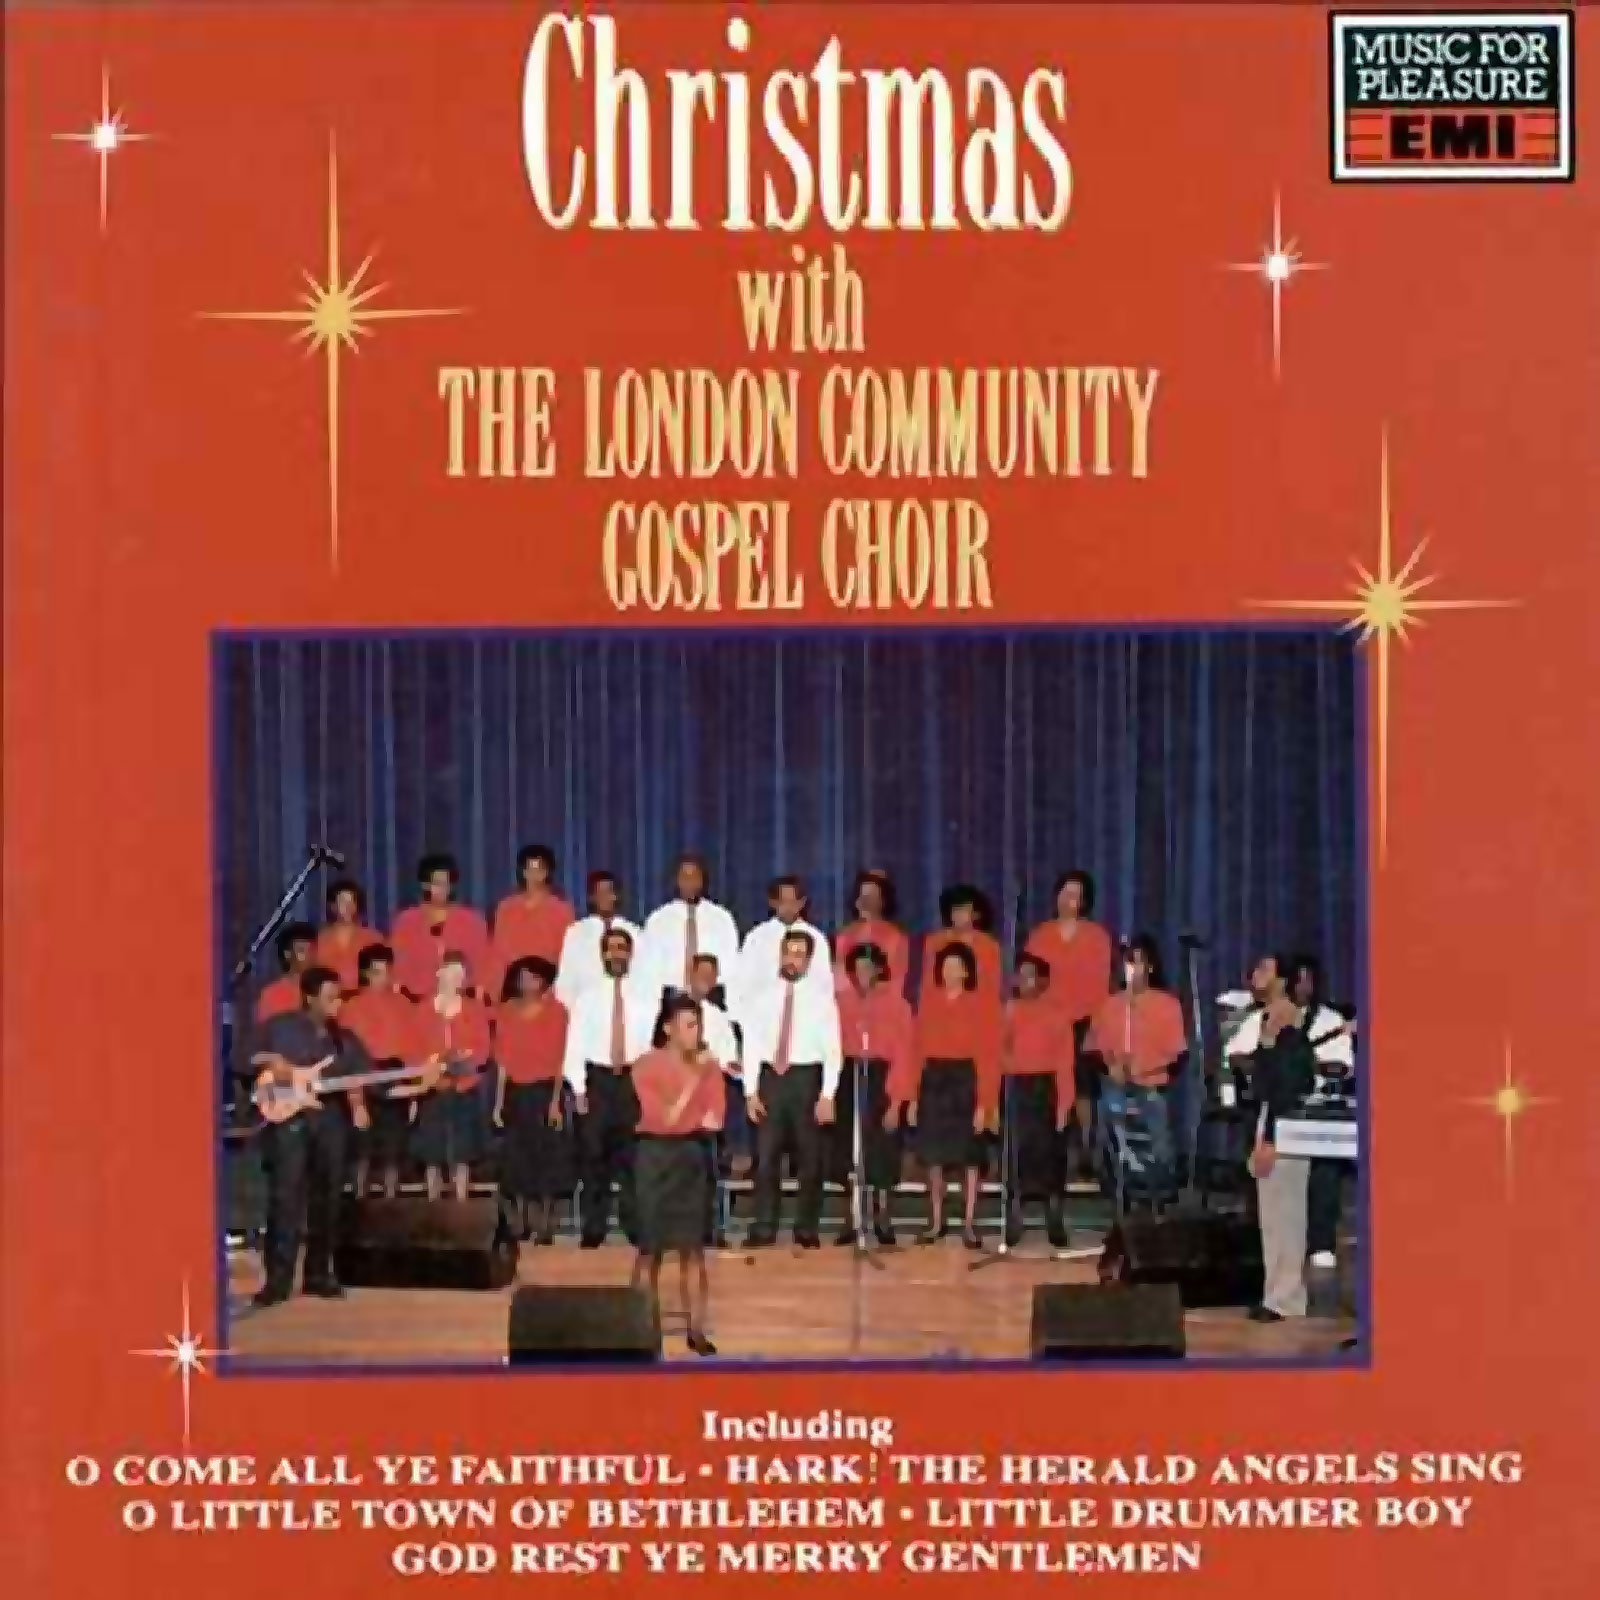 LCGC_Christmas_With_London_Community_Gospel_Choir_Cover_1600x1600